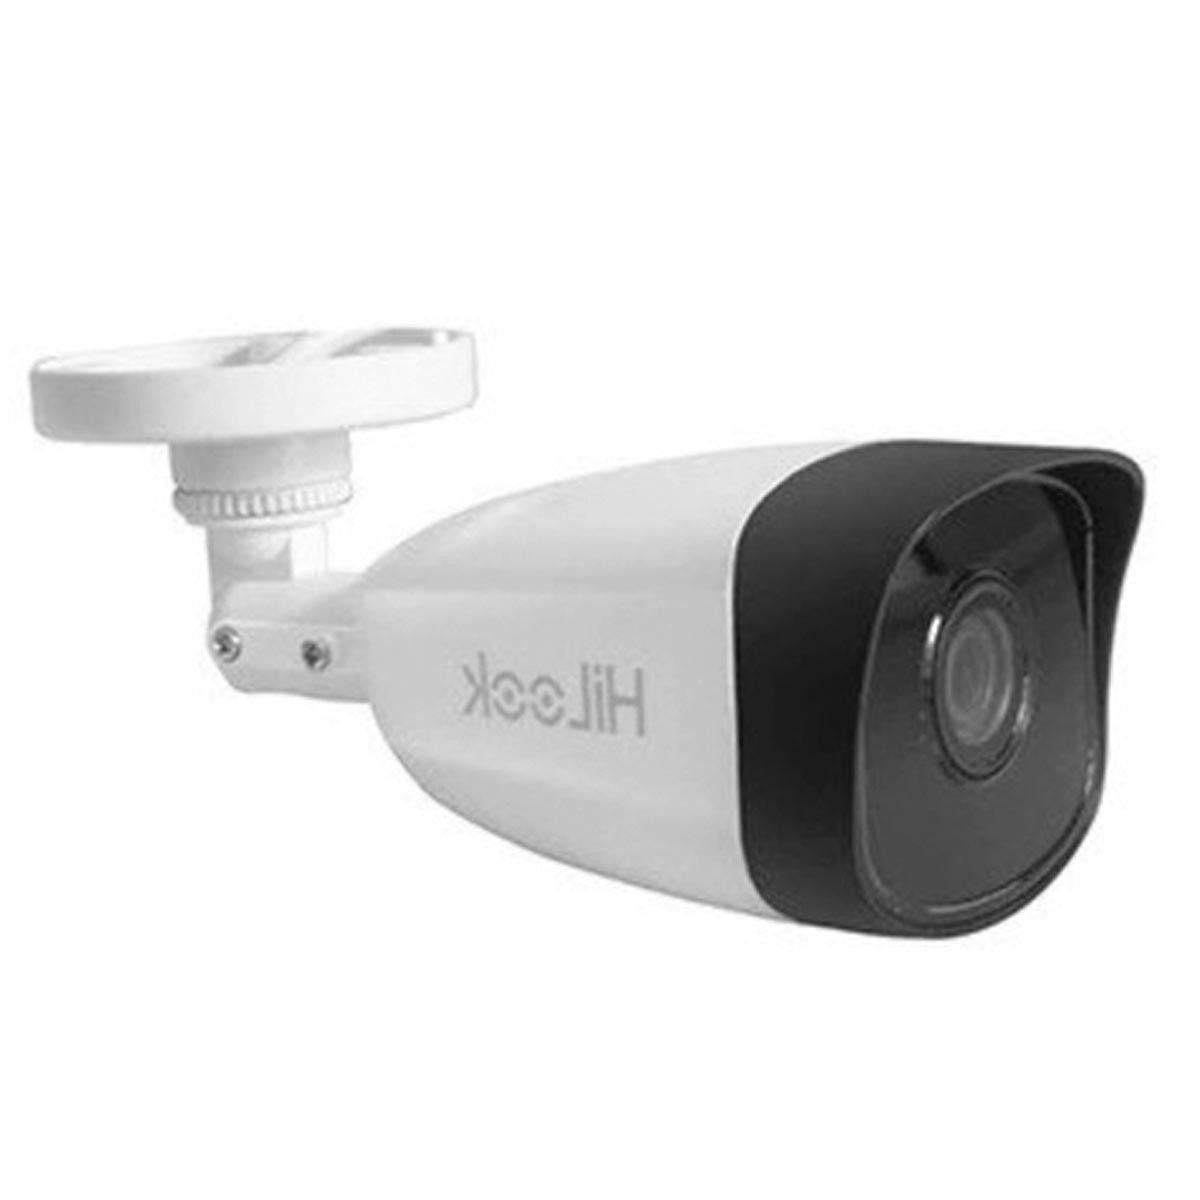 CÂMERA BULLET HIKVISION HILOOK IP 30 MTS 2MP 2,8MM METAL IPC-B121H-L